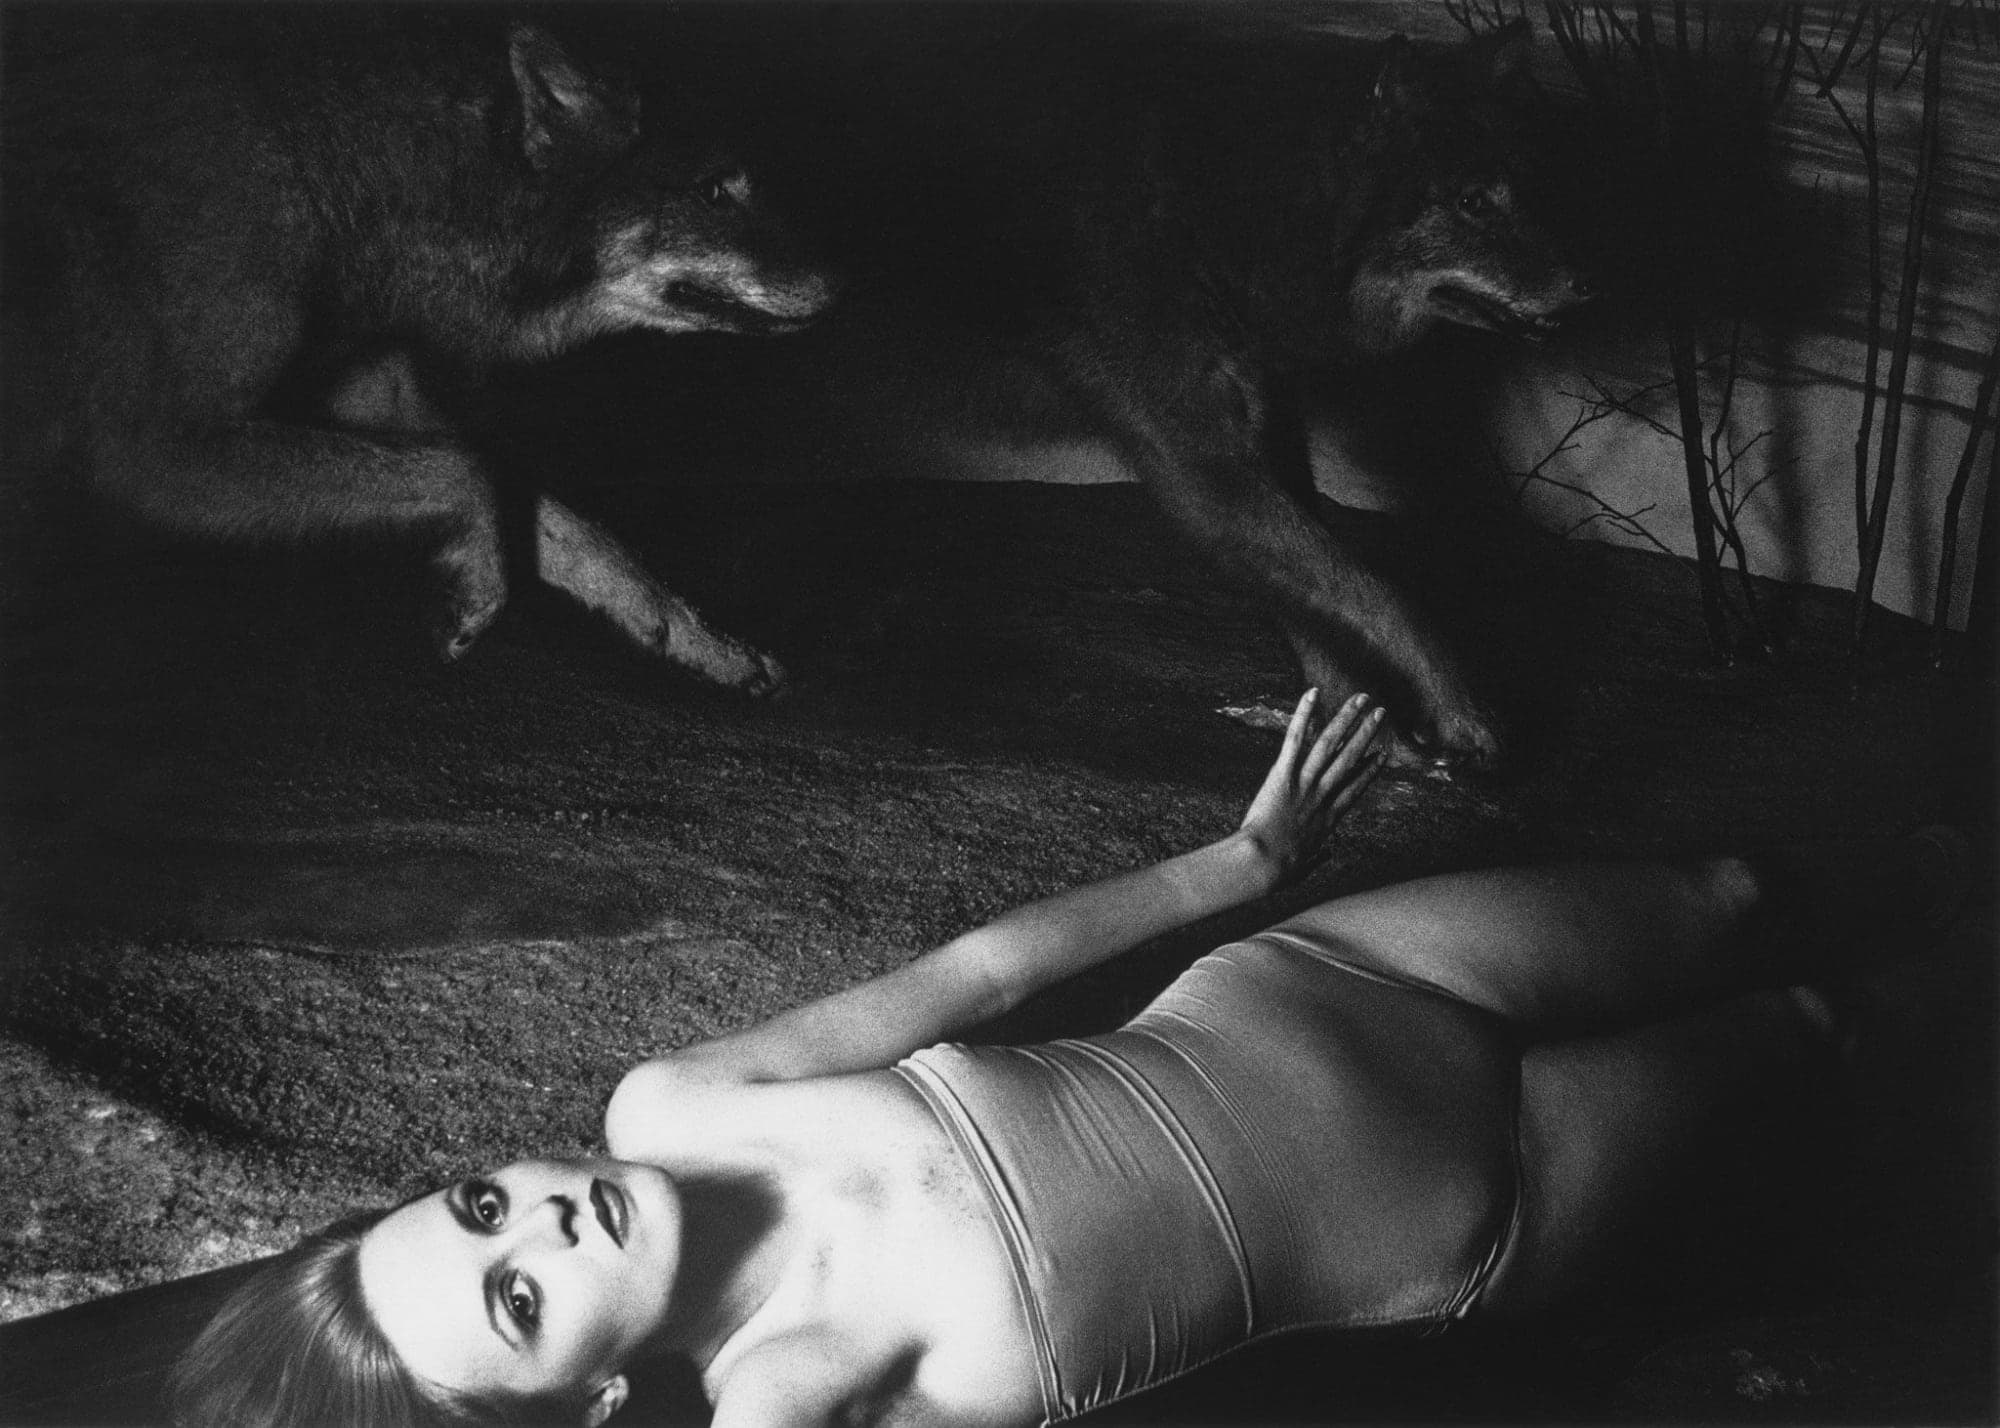 Black and white photograph of a horizontal figure and two running wolves with dramatic lighting.